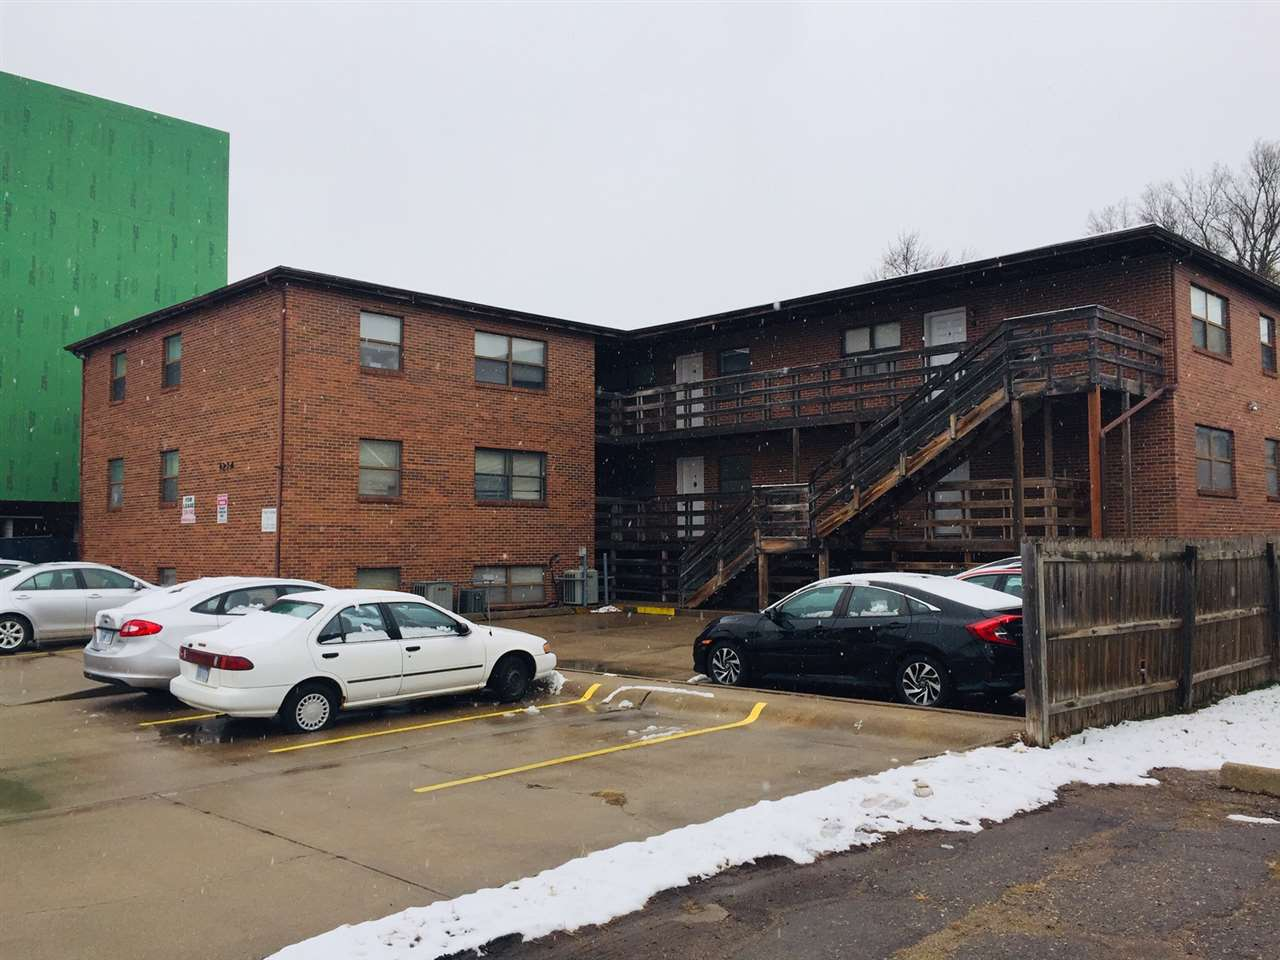 Here is your chance to own a great investment property in a prime location right next to Kansas State University and Aggieville. 11 units are 3 Bed 1.5 Bath.  The other unit is 2 bed 1.5 bath.  Owner pays water and trash, tenants pay electric.  Each unit has a separate meter.